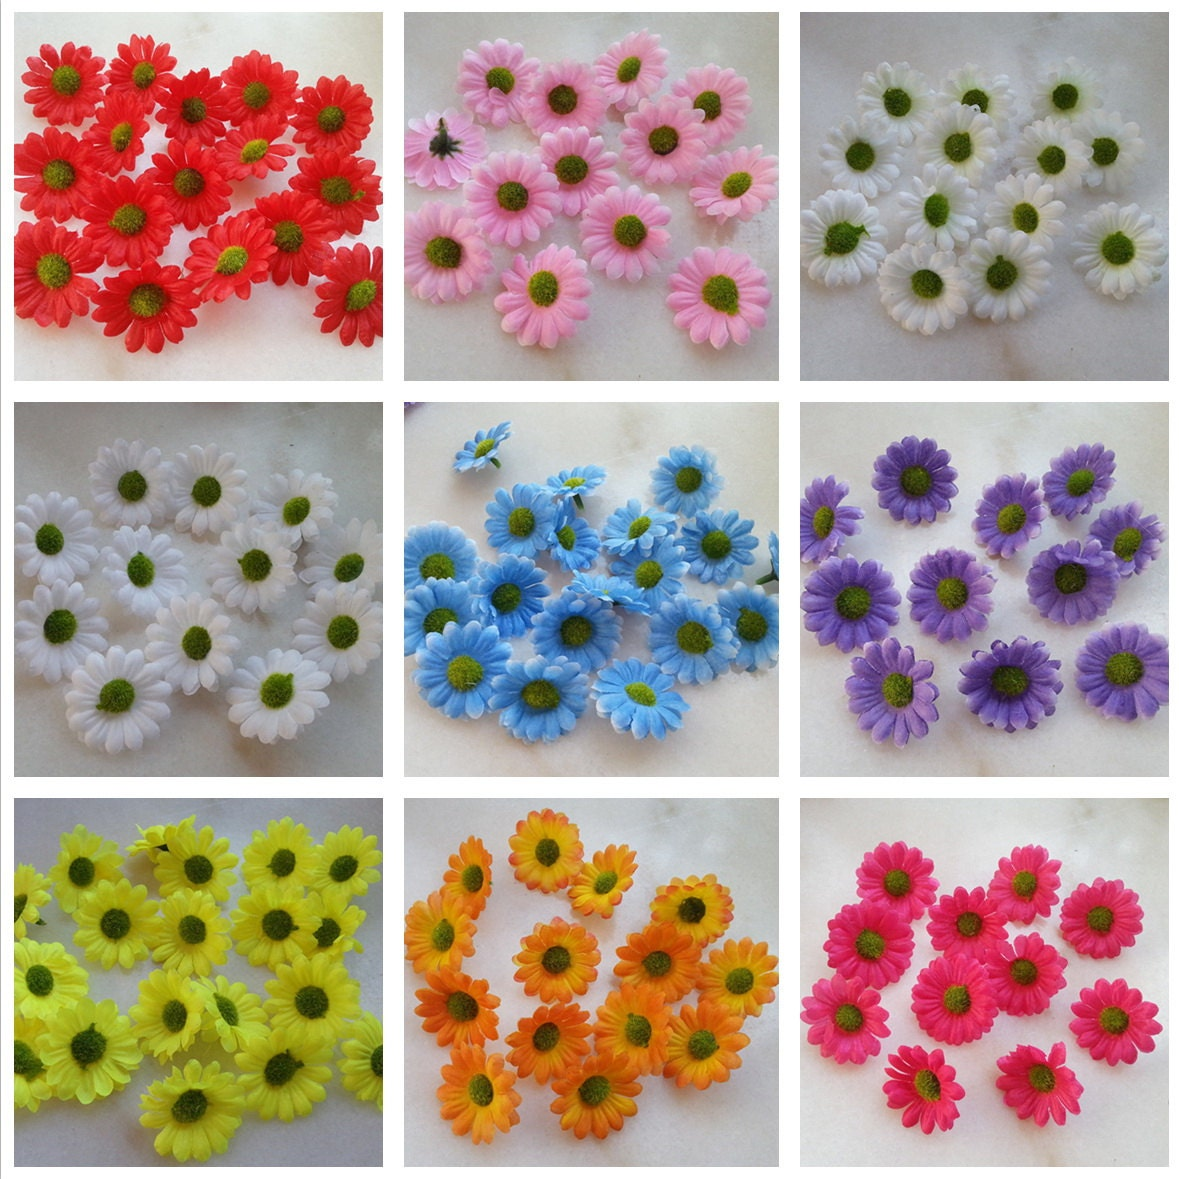 Flower heads for crafts - Wholesale Flowers Mini Gerbera Daisy Flower Heads 4cm Silk Daisy Mini Flowers 50pcs Diy Crafts For Hair Clips Hats Clothes